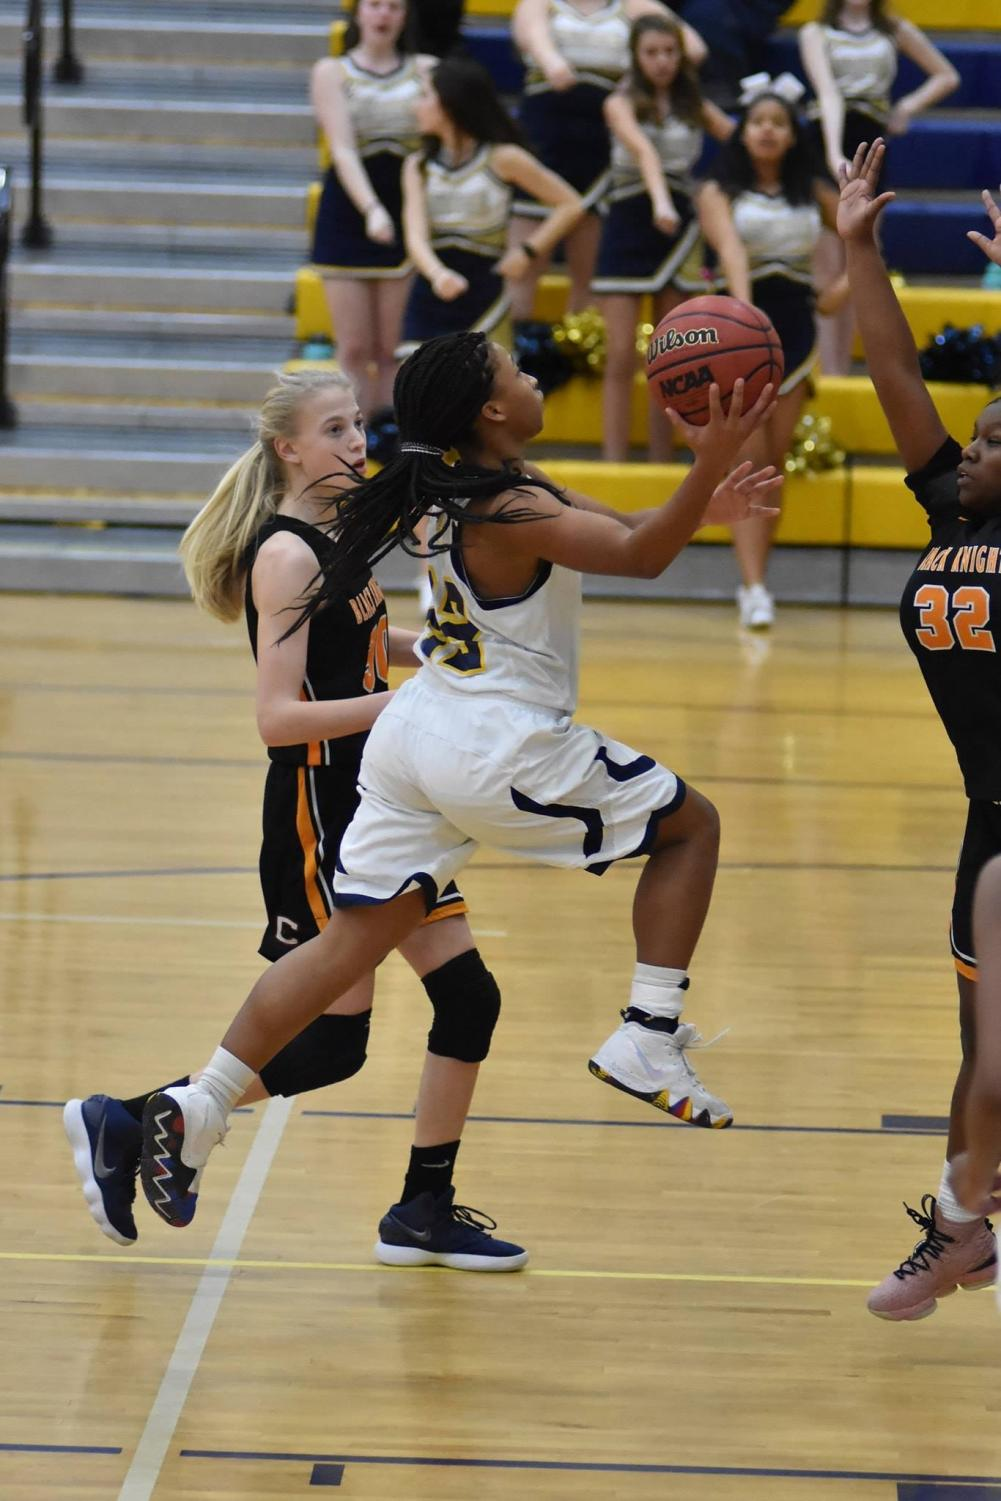 Varsity player Junior Jules Shepherd driving to the basket in the game against Charlottesville on Jan. 22. Photo courtesy of Flying Flucos Sports.